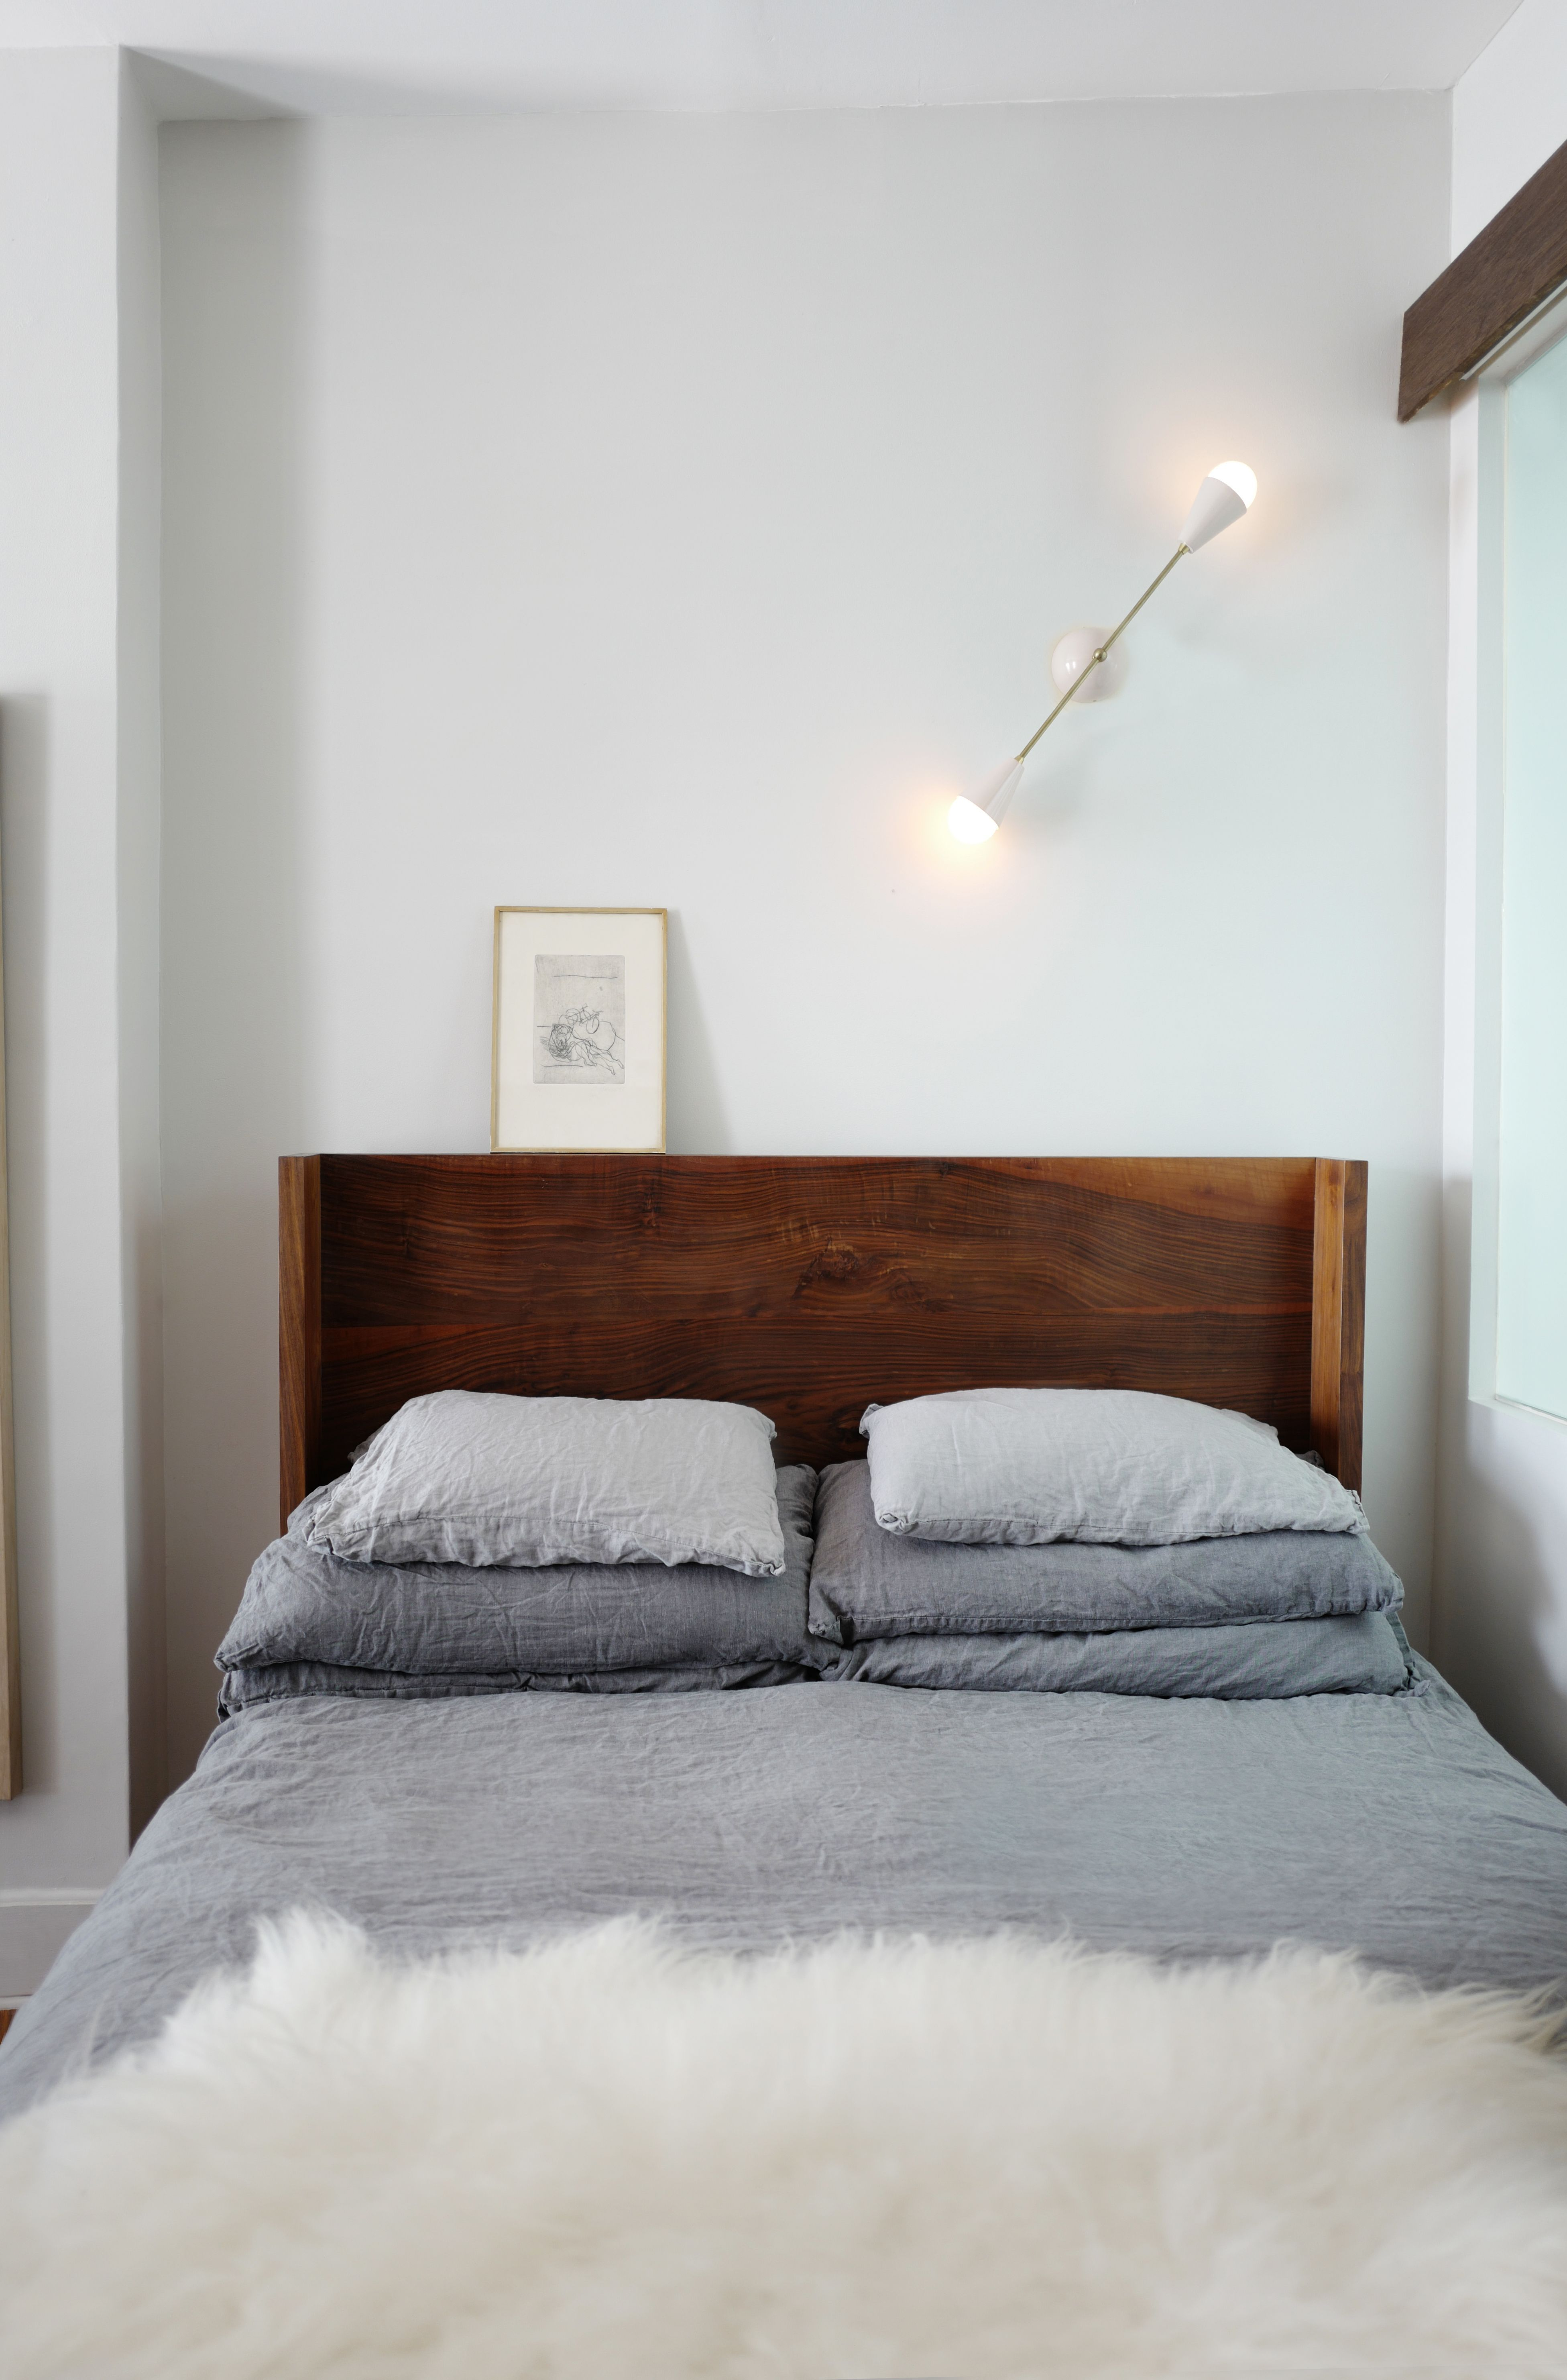 A Design Duou0027s 19th Century Brooklyn Townhouse Is